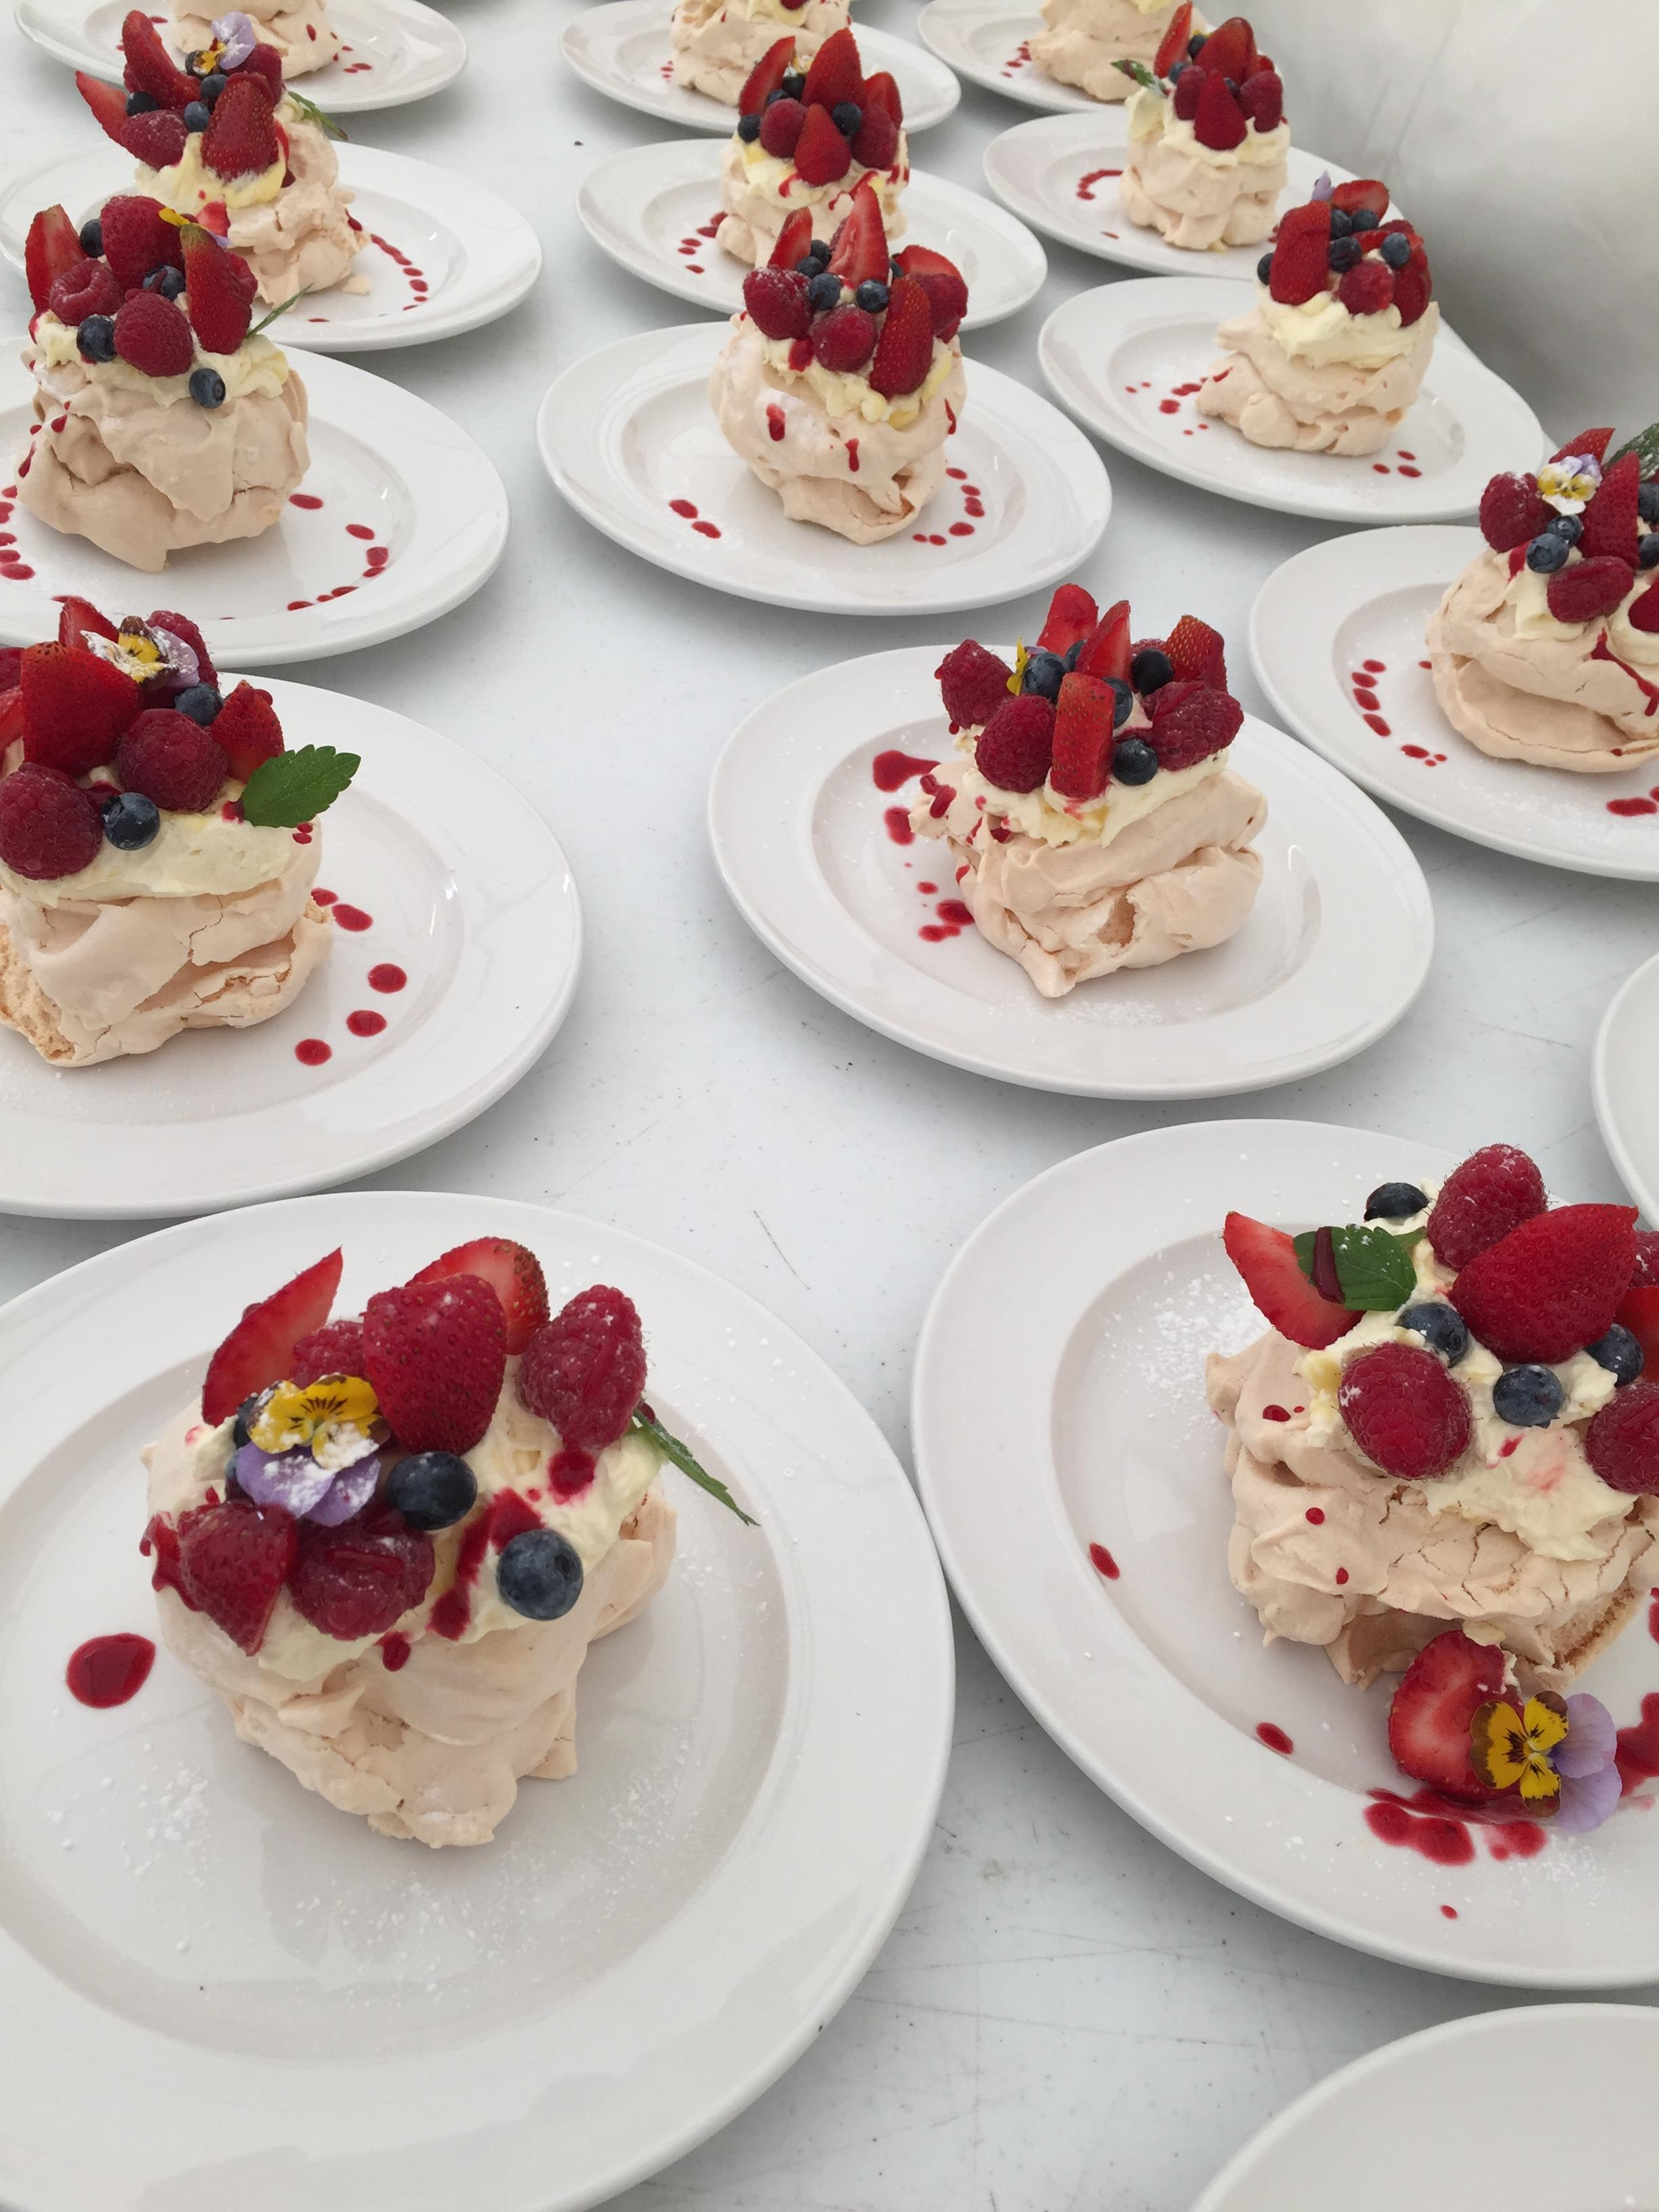 Cornwall corporate caterers